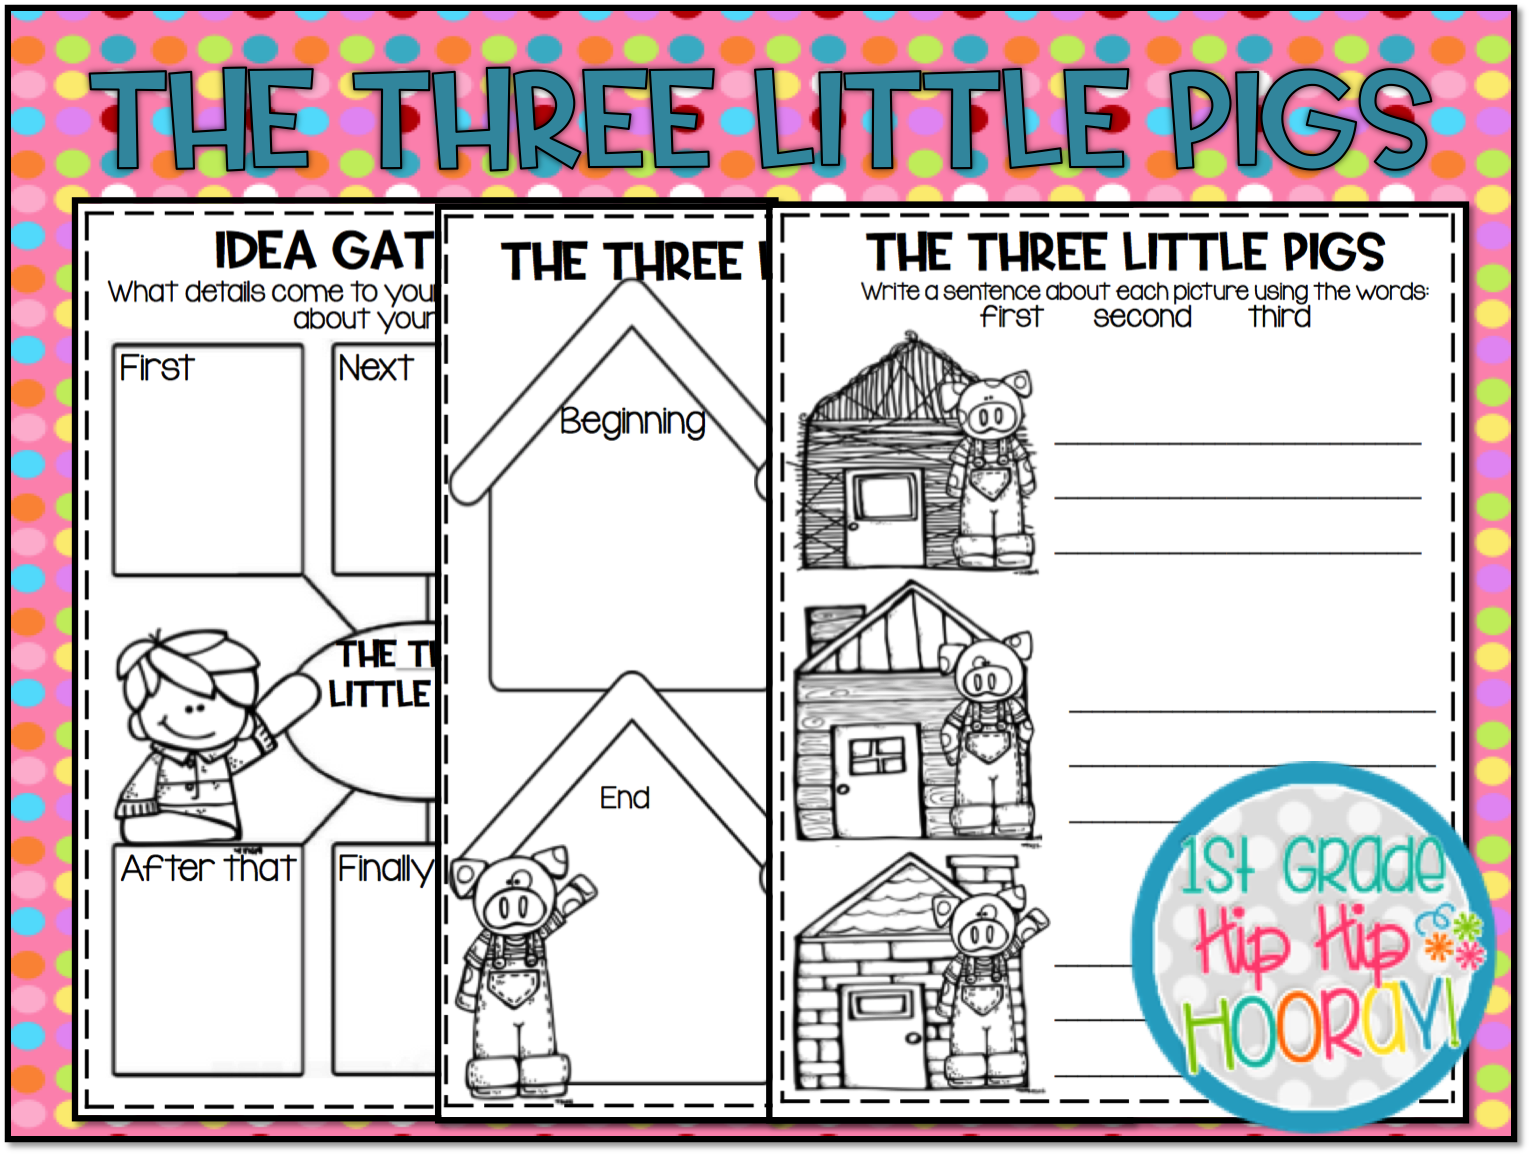 1st Grade Hip Hip Hooray The Three Little Pigs And The